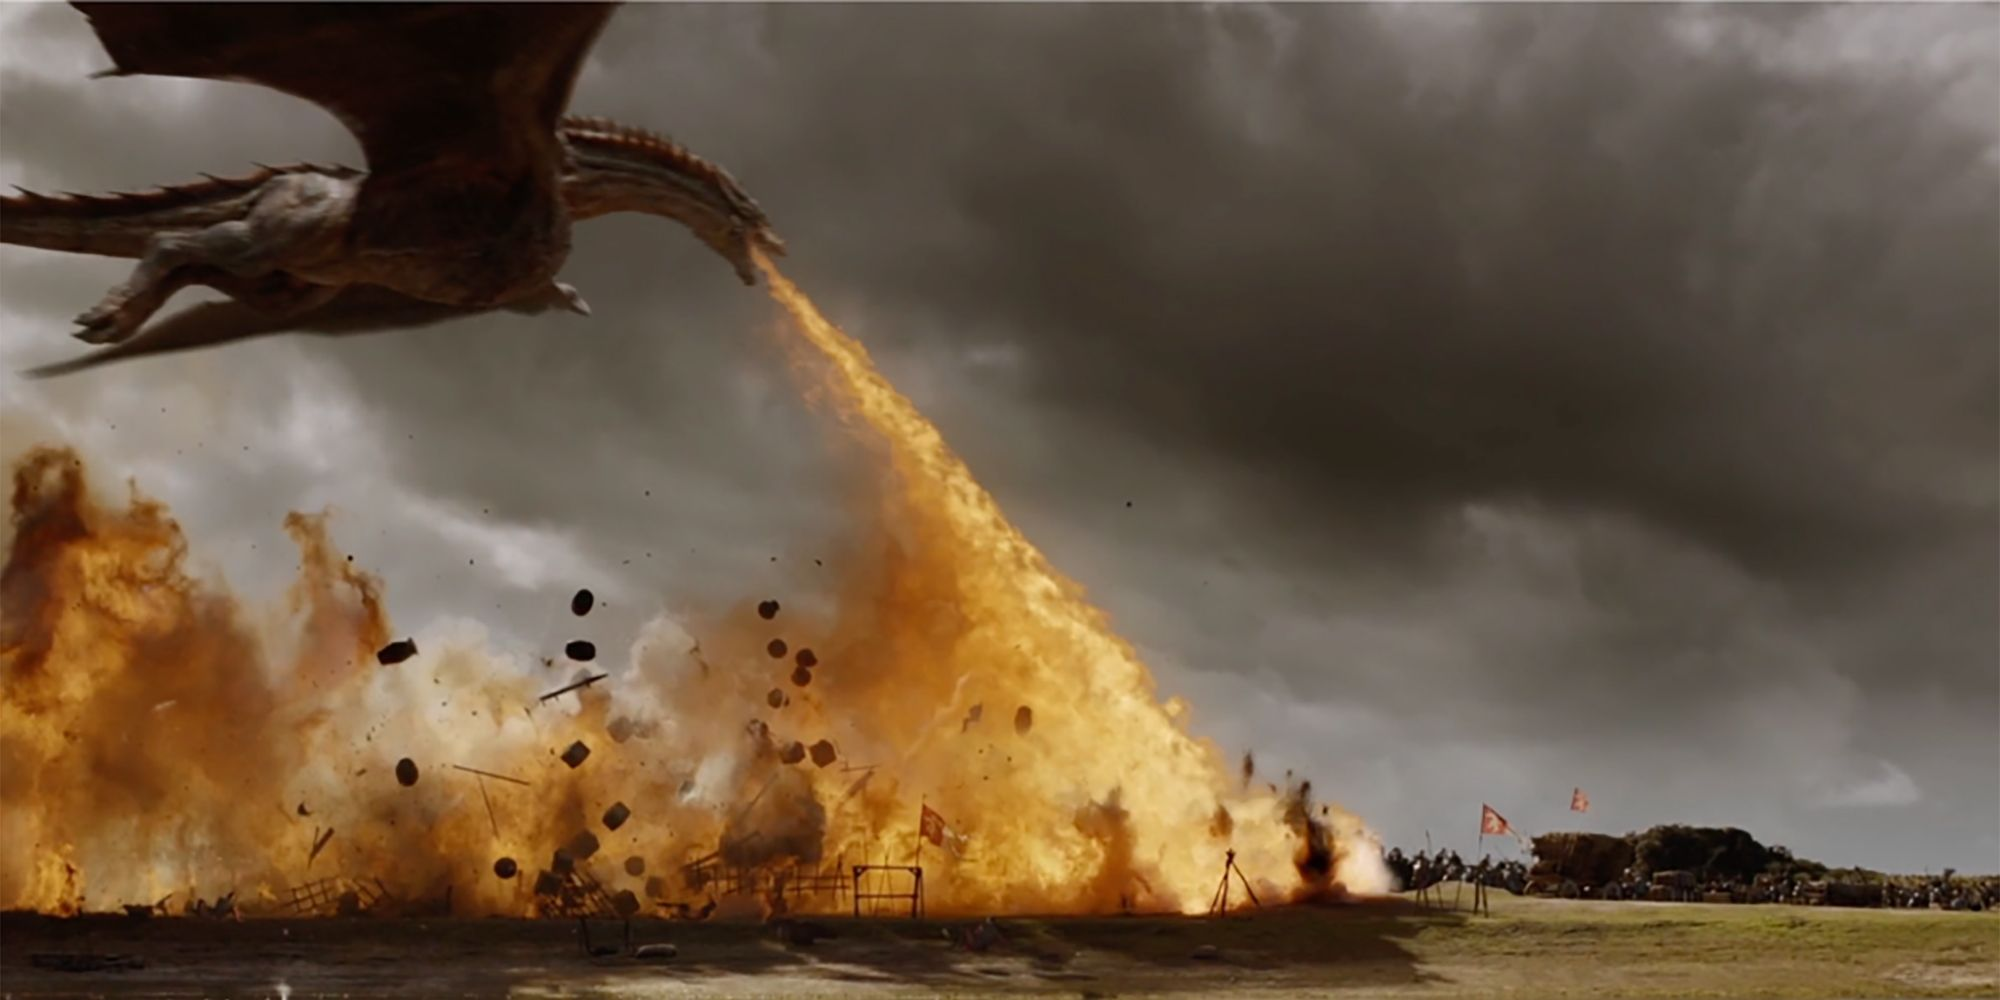 This Early 'Game Of Thrones' Season May Provide Clues On How The Show Will End